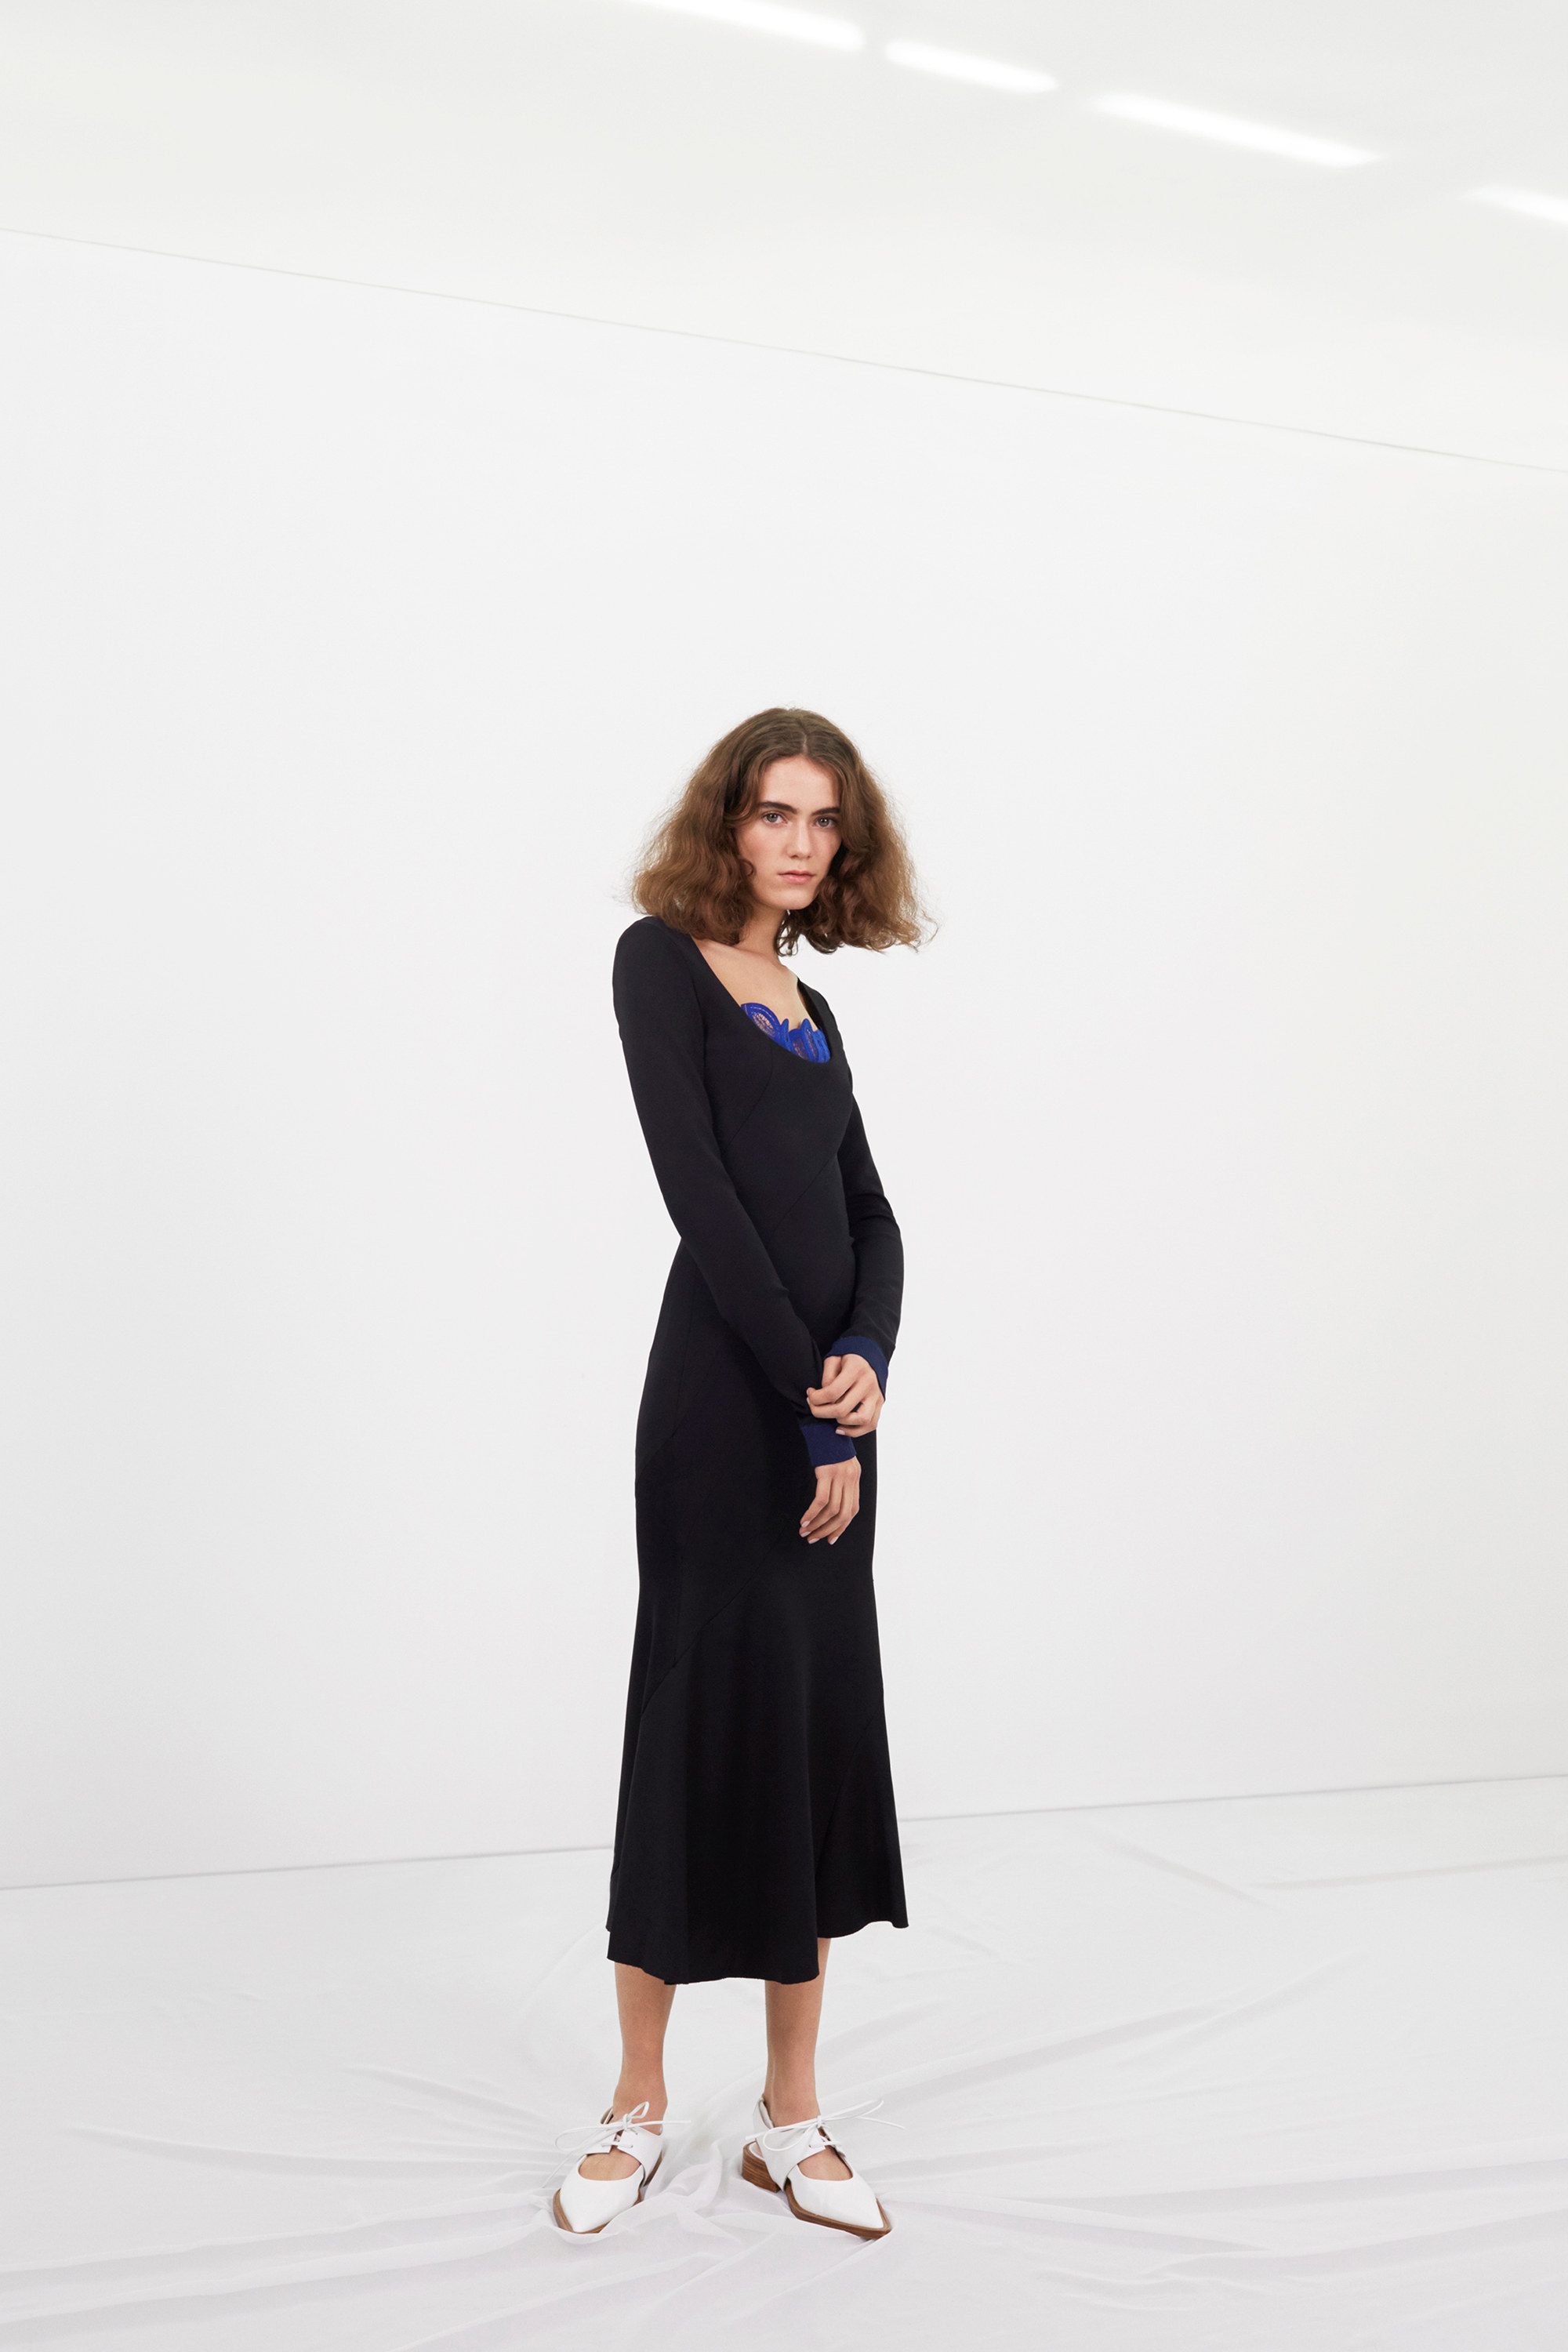 victoria-beckham-pre-fall-2016-lookbook-06.jpg